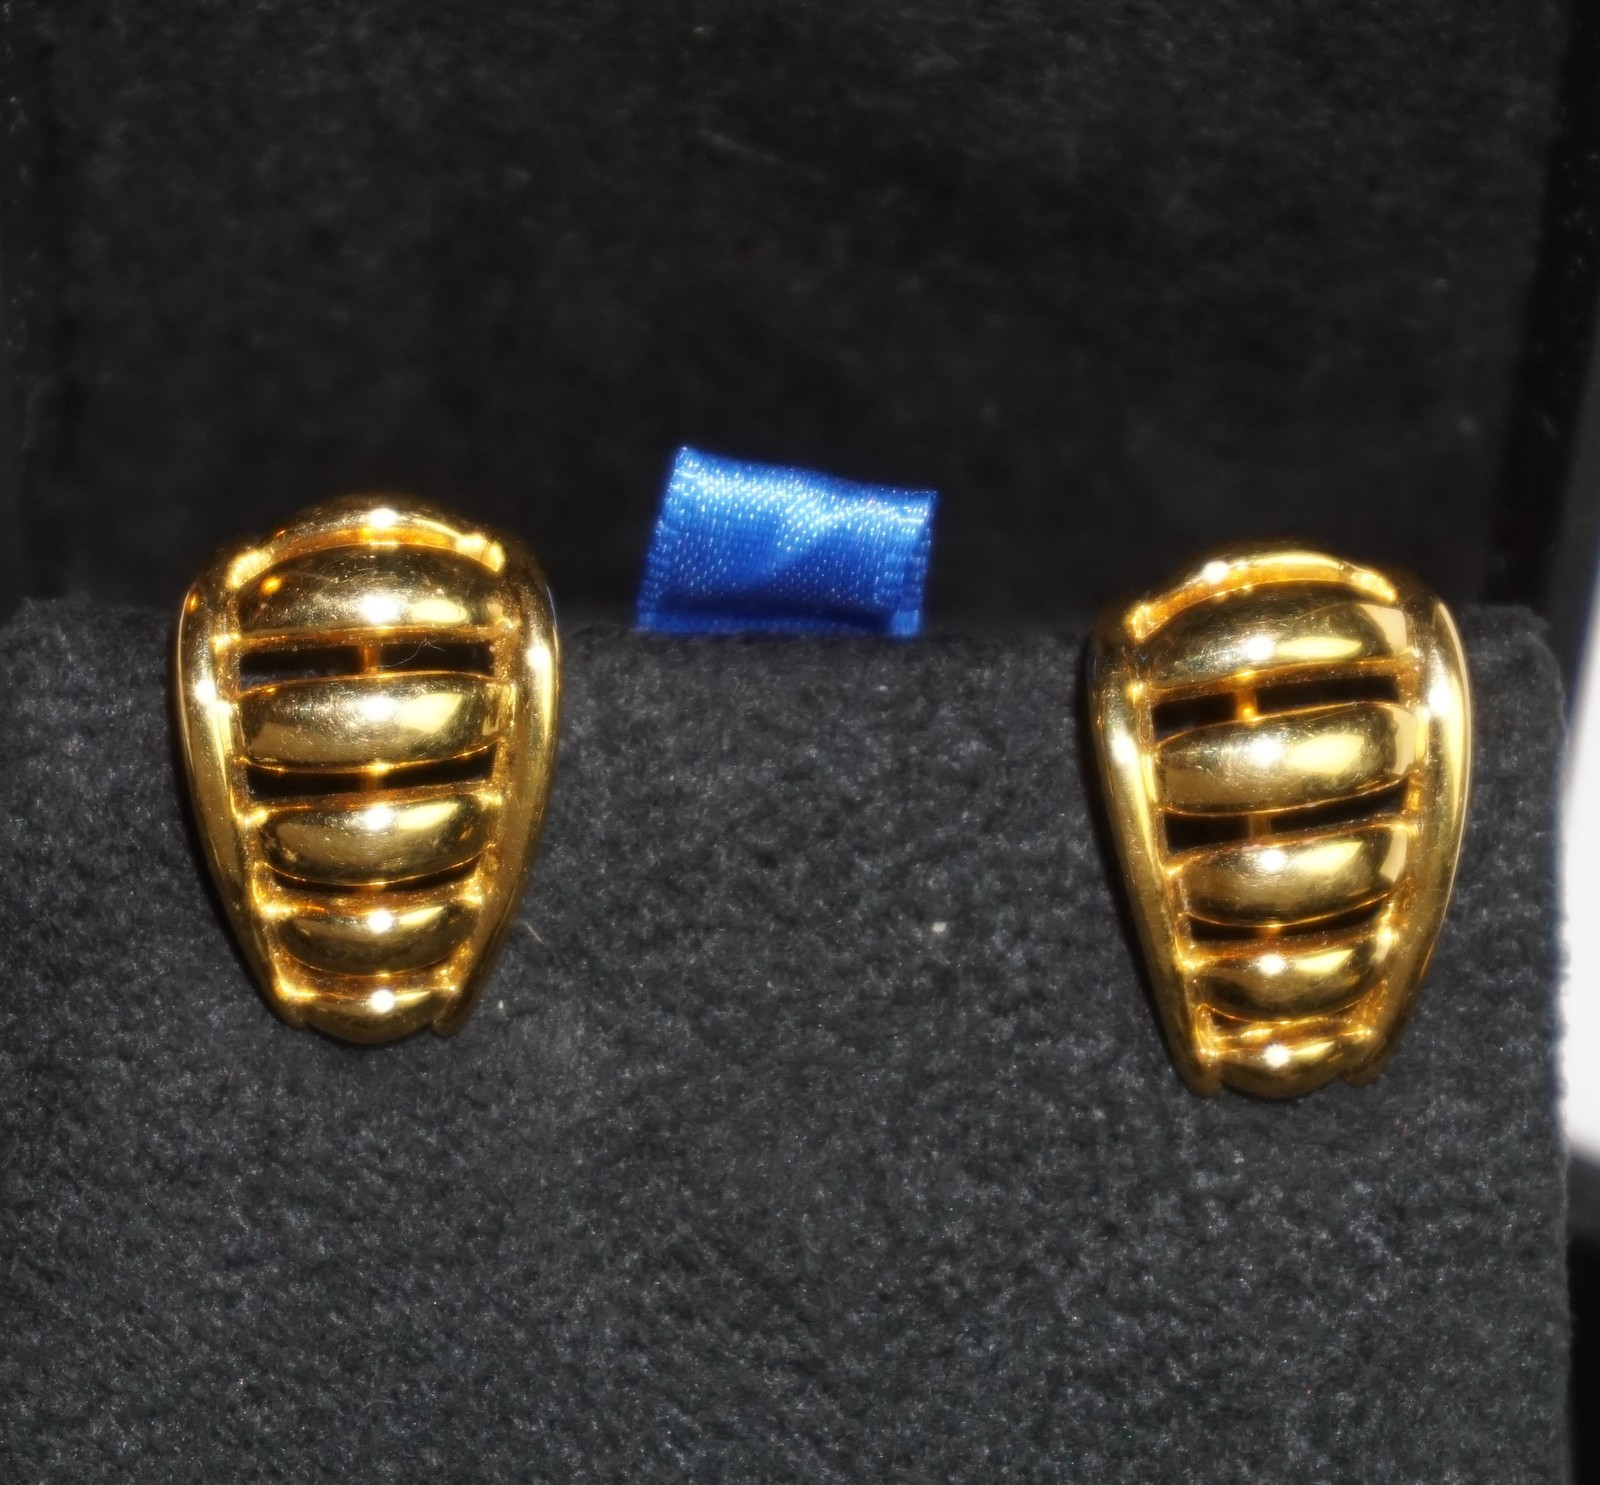 Primary image for Napier Vintage Gold Tone Clip on Earrings 1 inch  w/ Screw Adjust